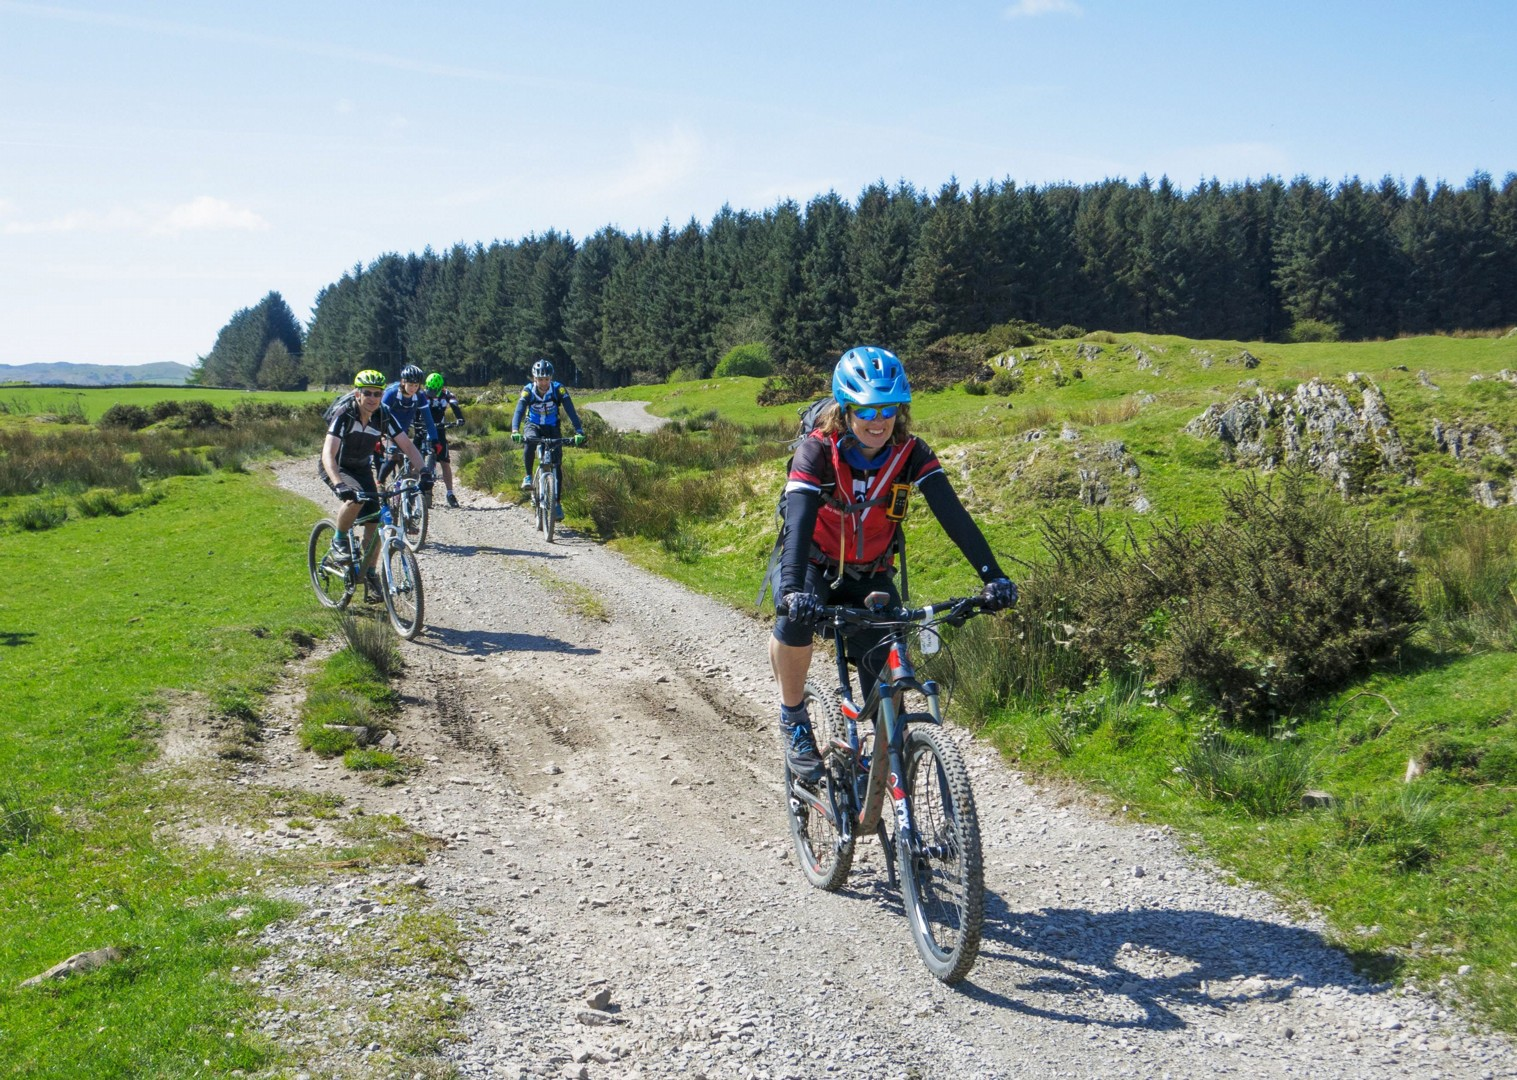 guided-mountain-bike-holida-in-UK-Lake-District-biking.jpg - UK - Lake District - Classic Coniston - Guided Mountain Bike Weekend - Mountain Biking